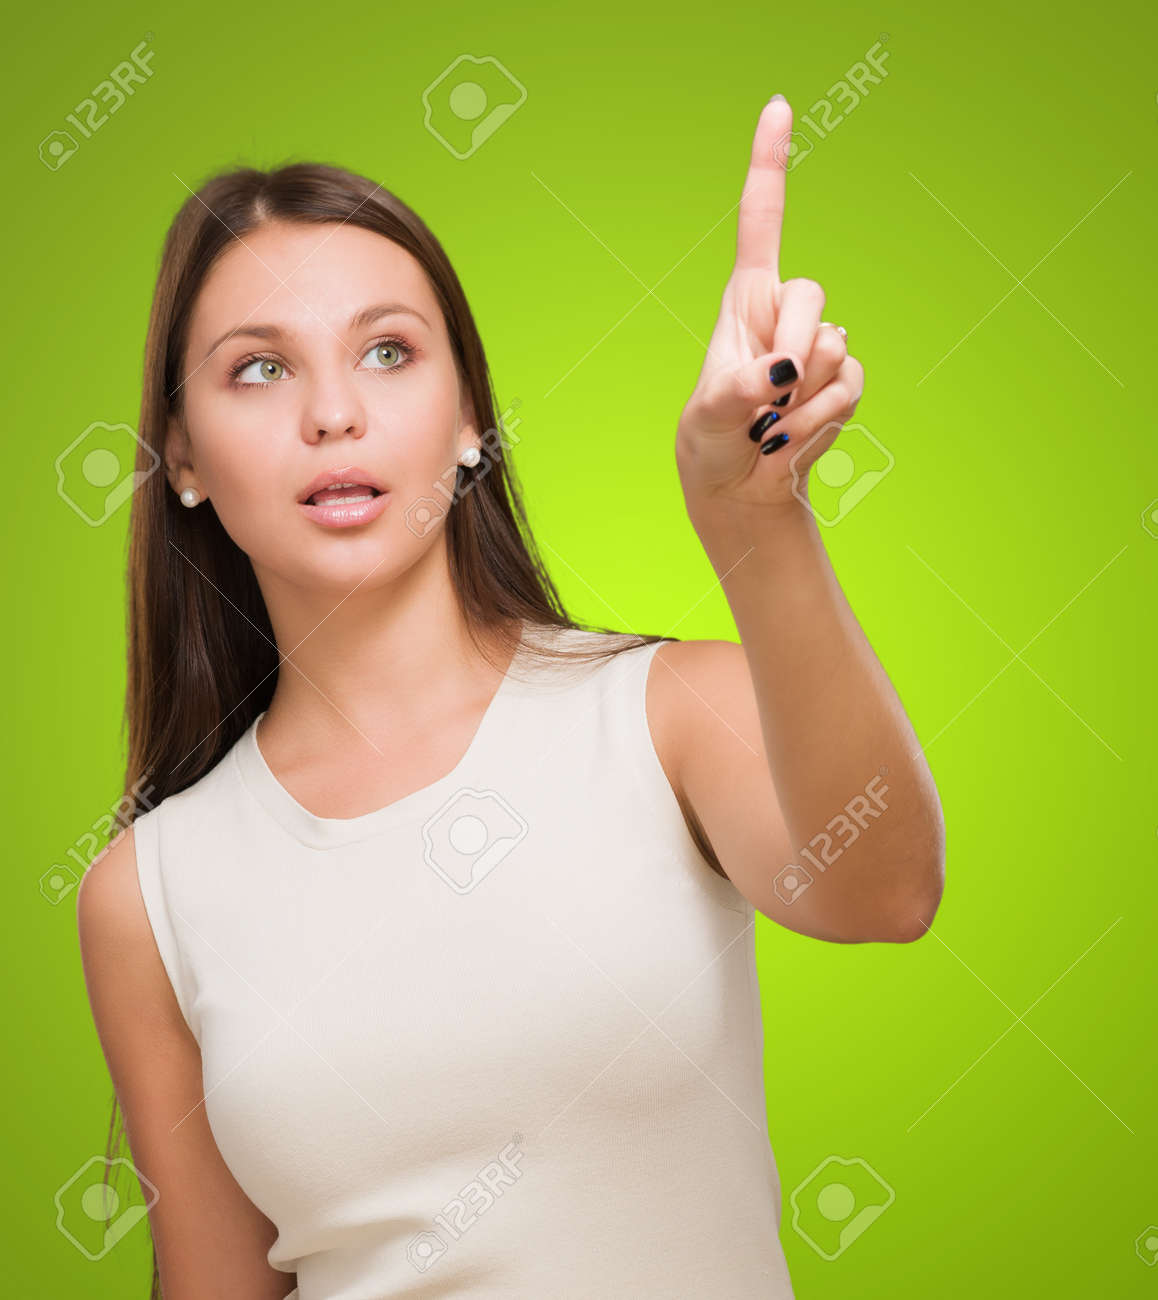 Portrait Of A Young Woman Pointing Up against a green background - 16671751